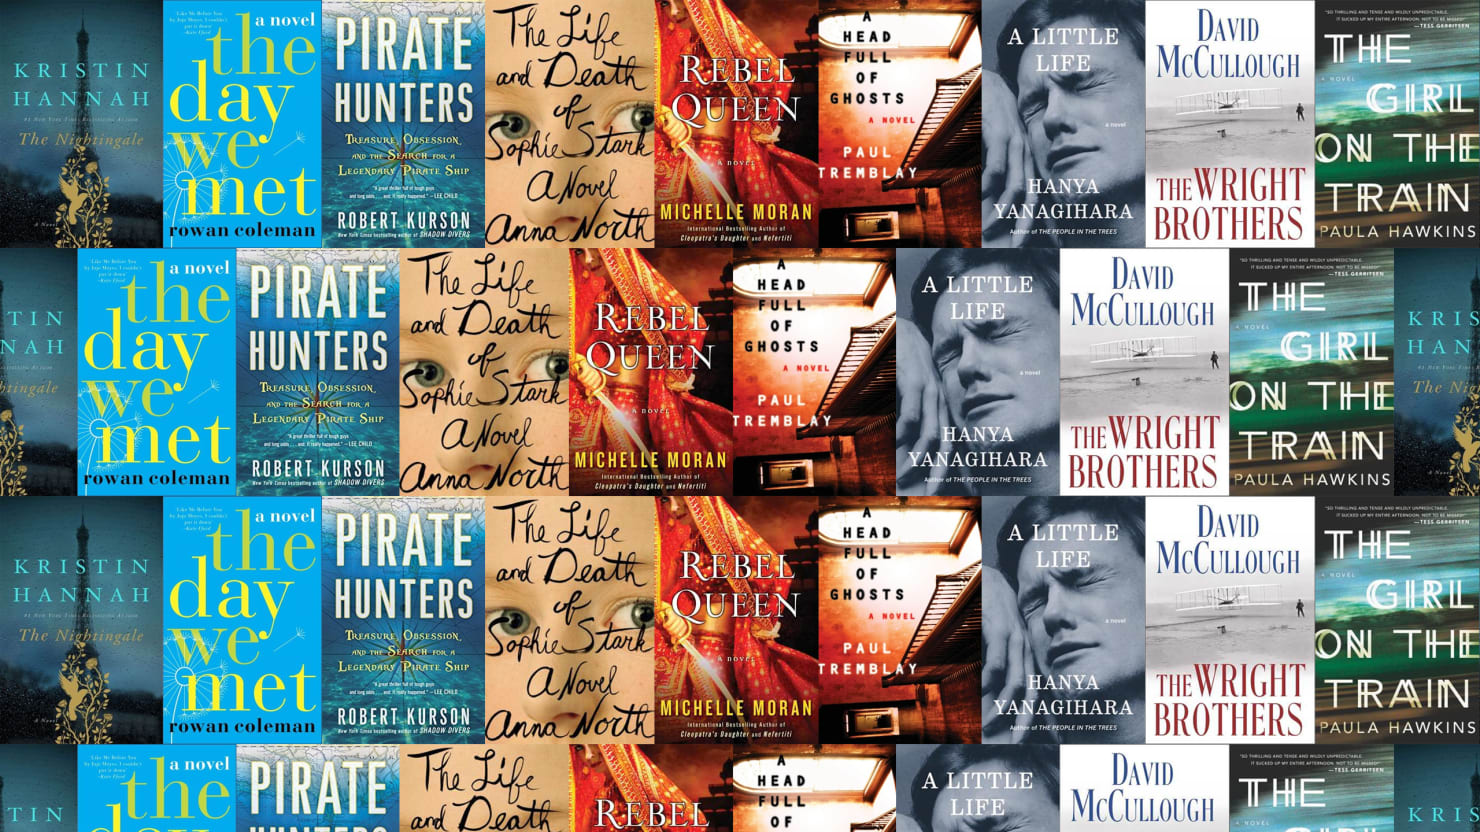 Goodreads Picks the Hottest Books of the 2015 Summer